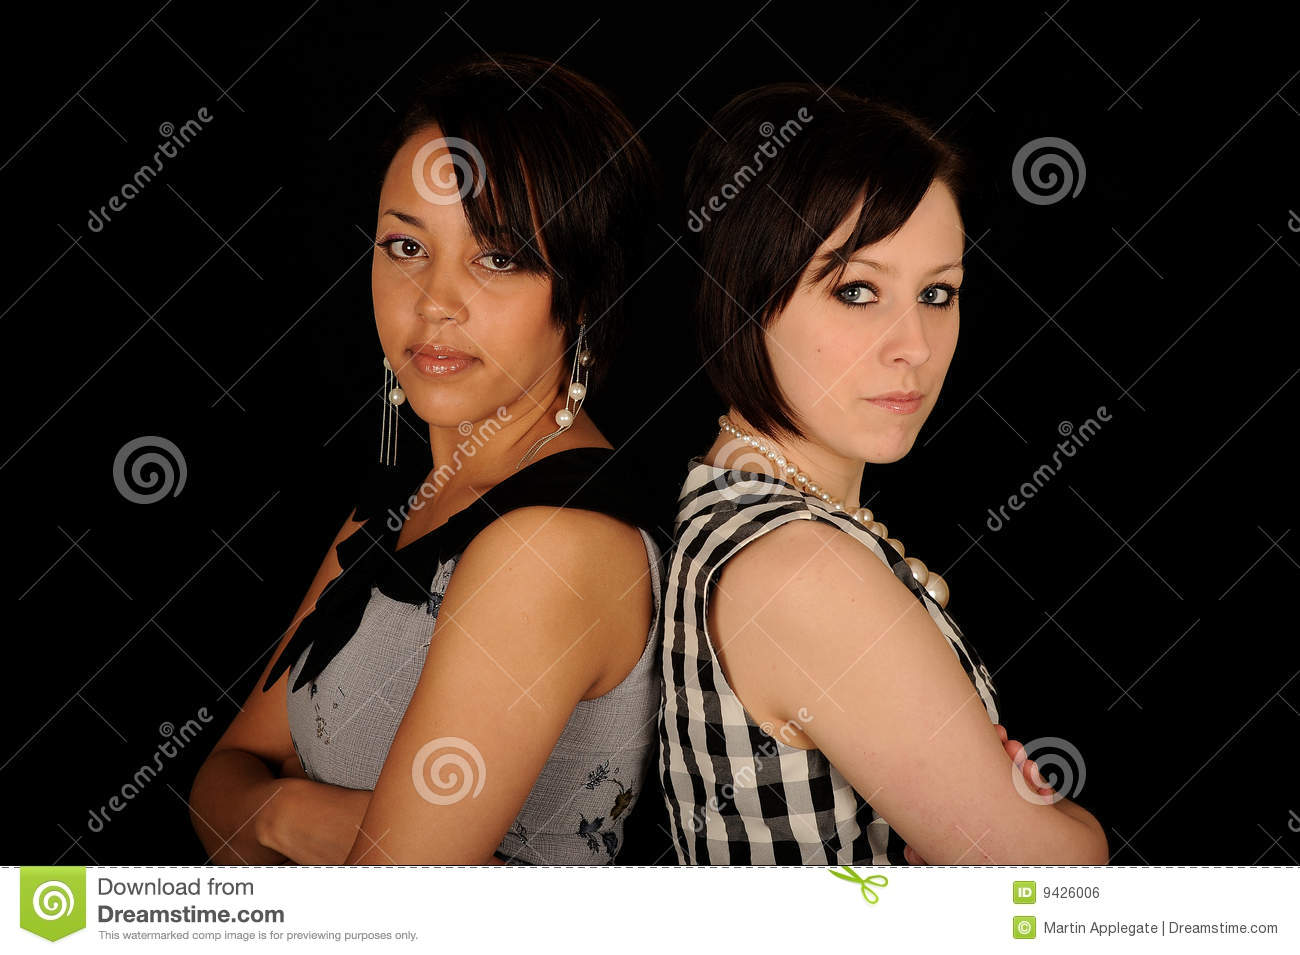 Two woman back-to-back